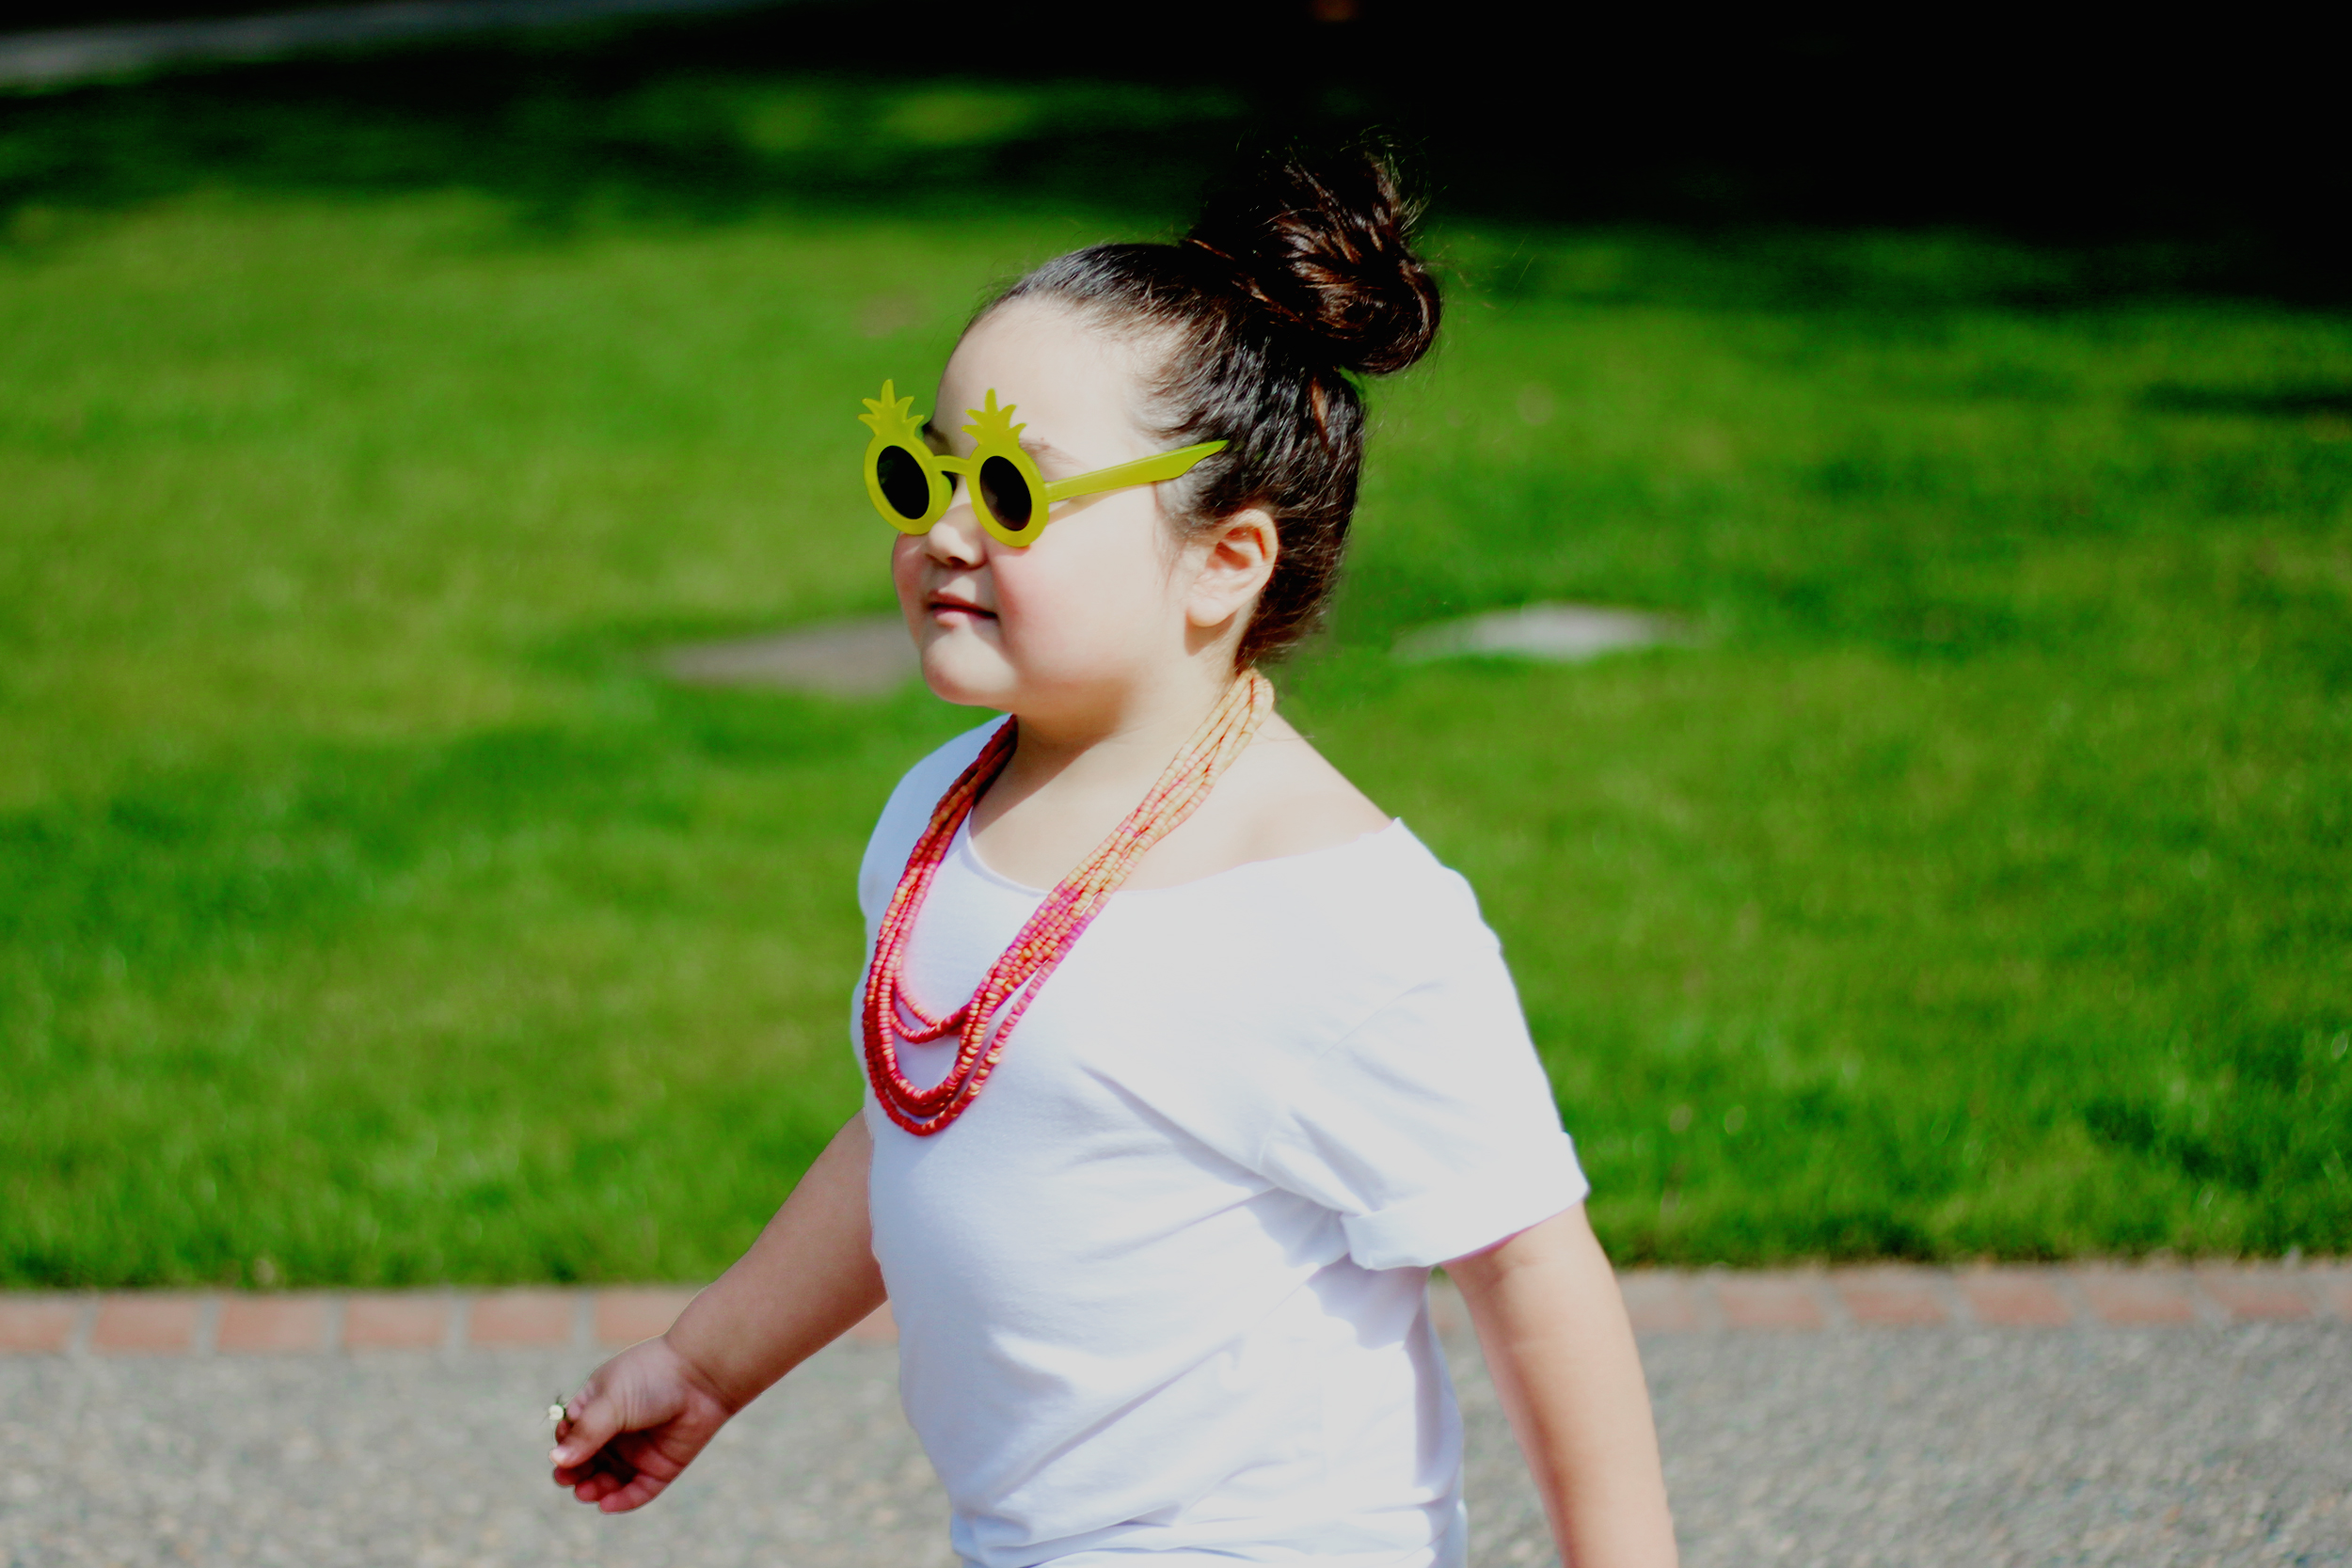 Gifted with Moves - ALWAYS DANCE TO YOUR OWN BEAT - All Kids Are Gifted